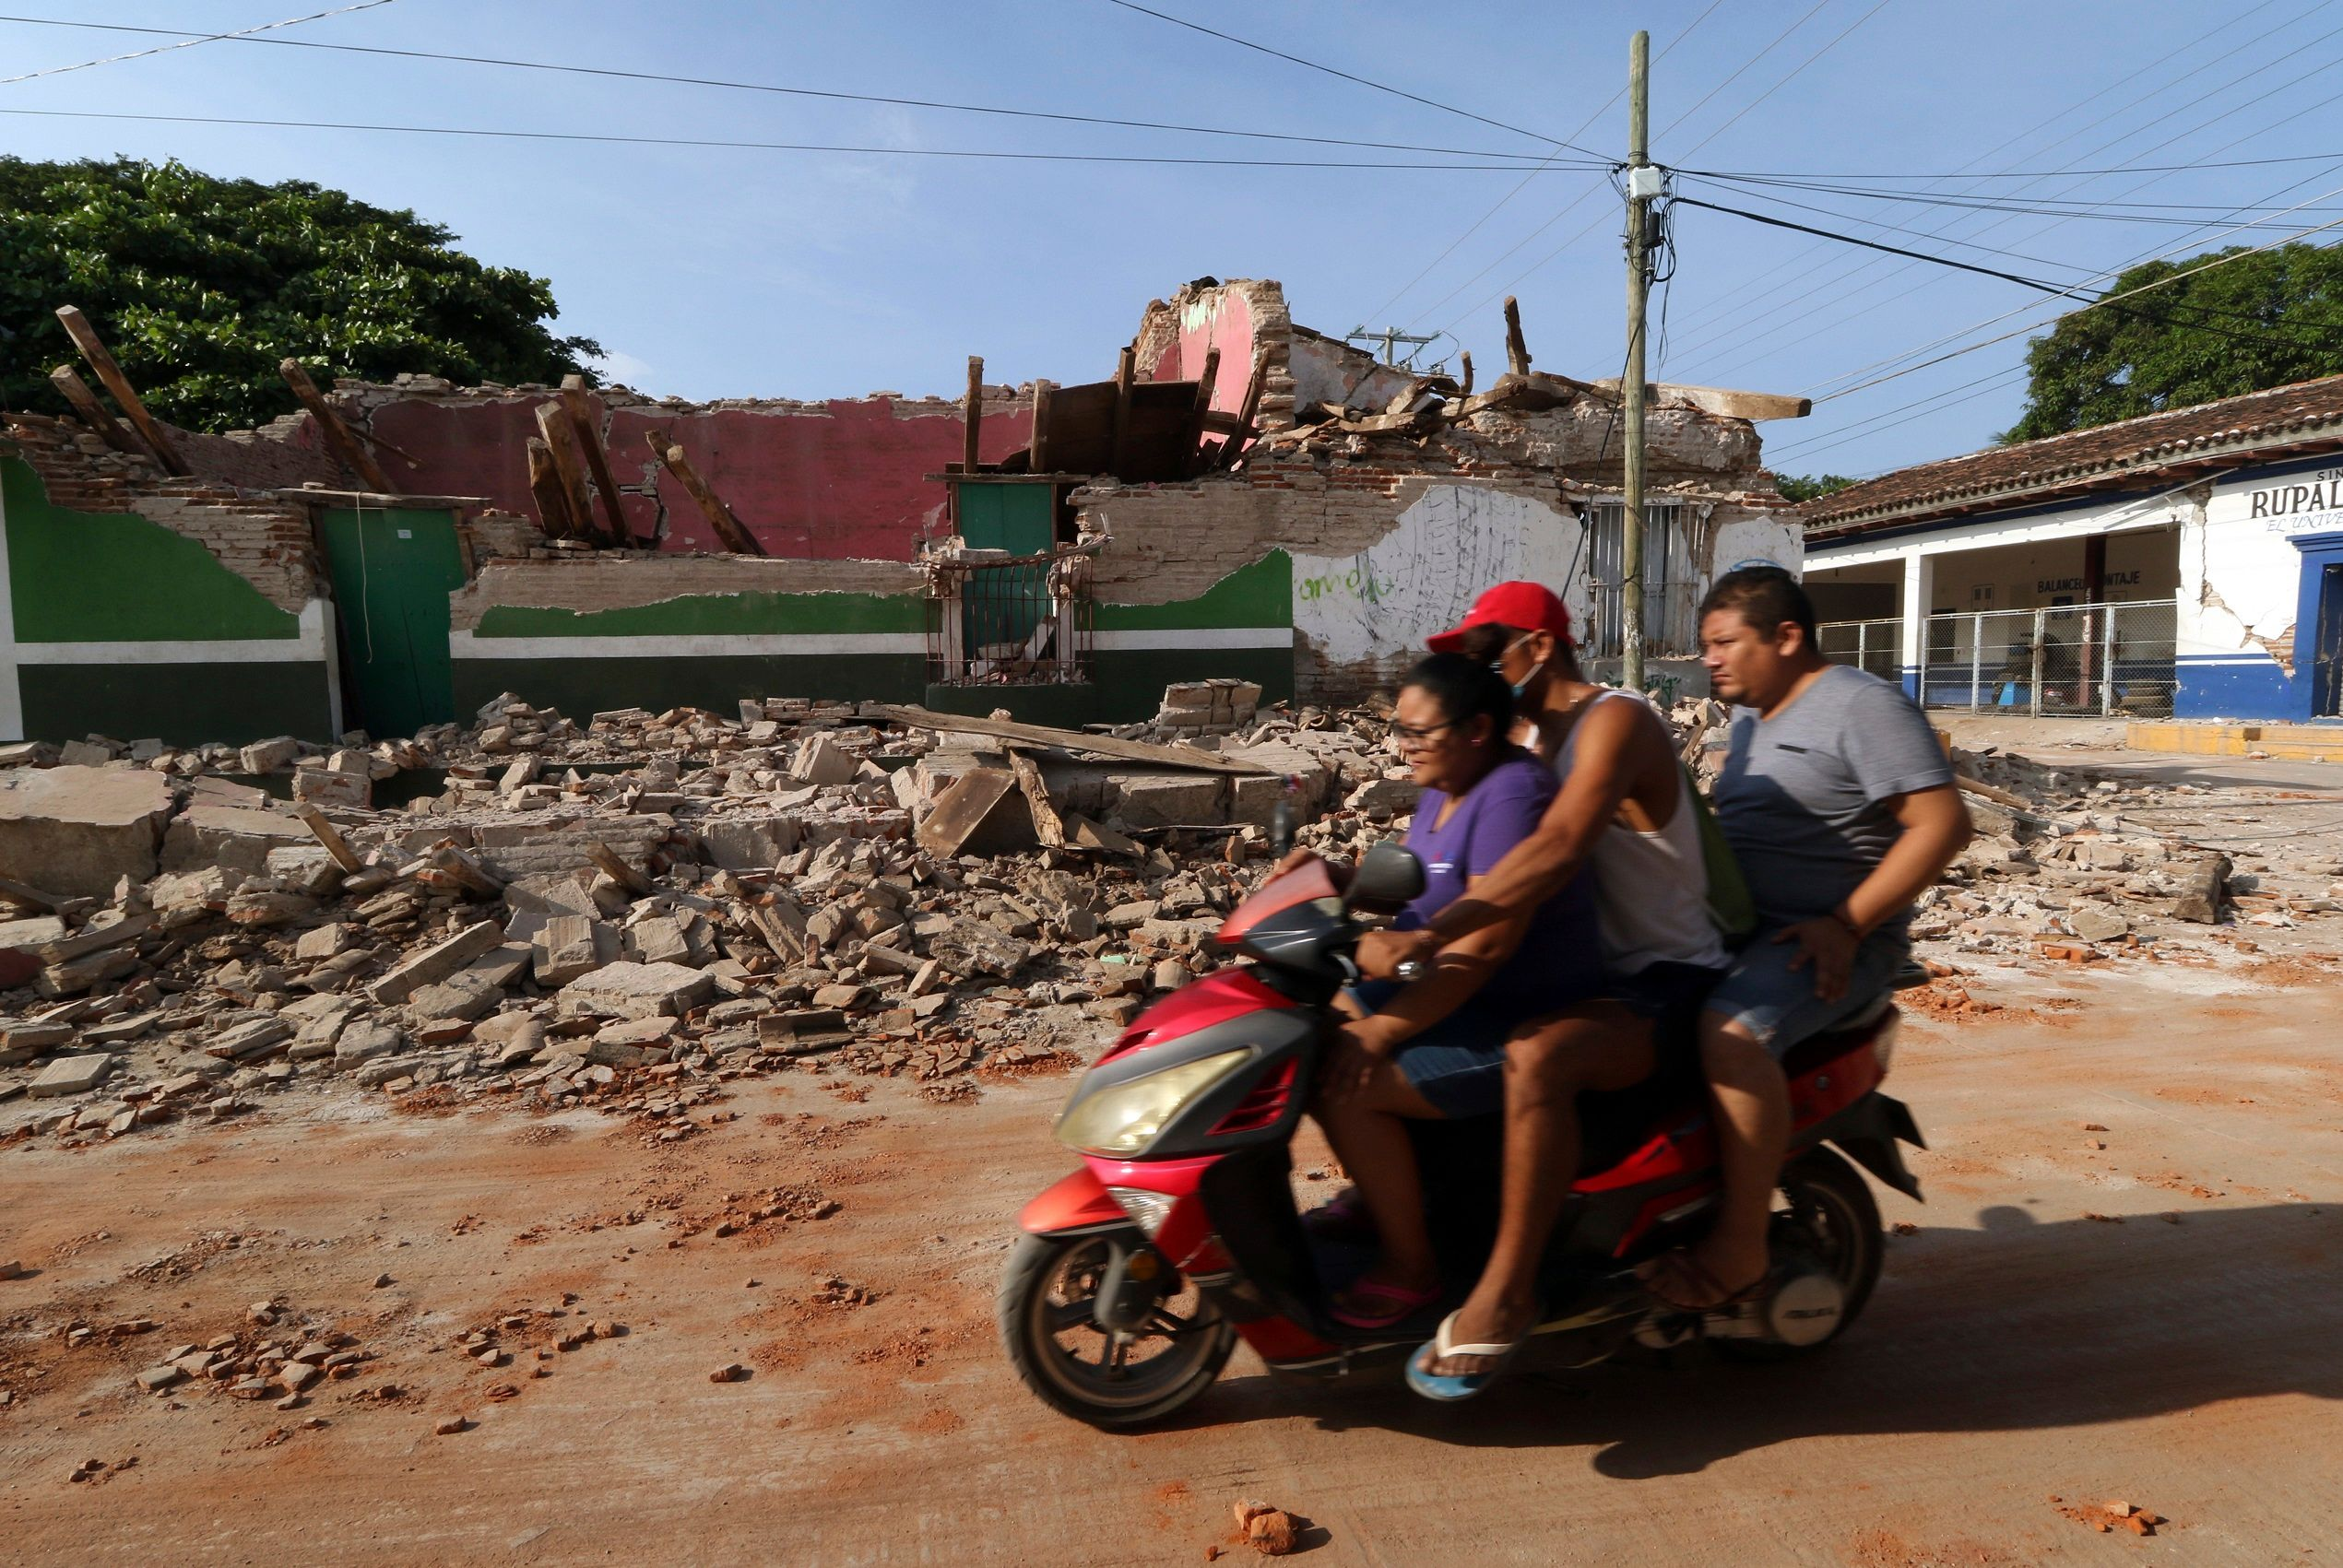 8.1 quake rocks Mexico, deaths reported